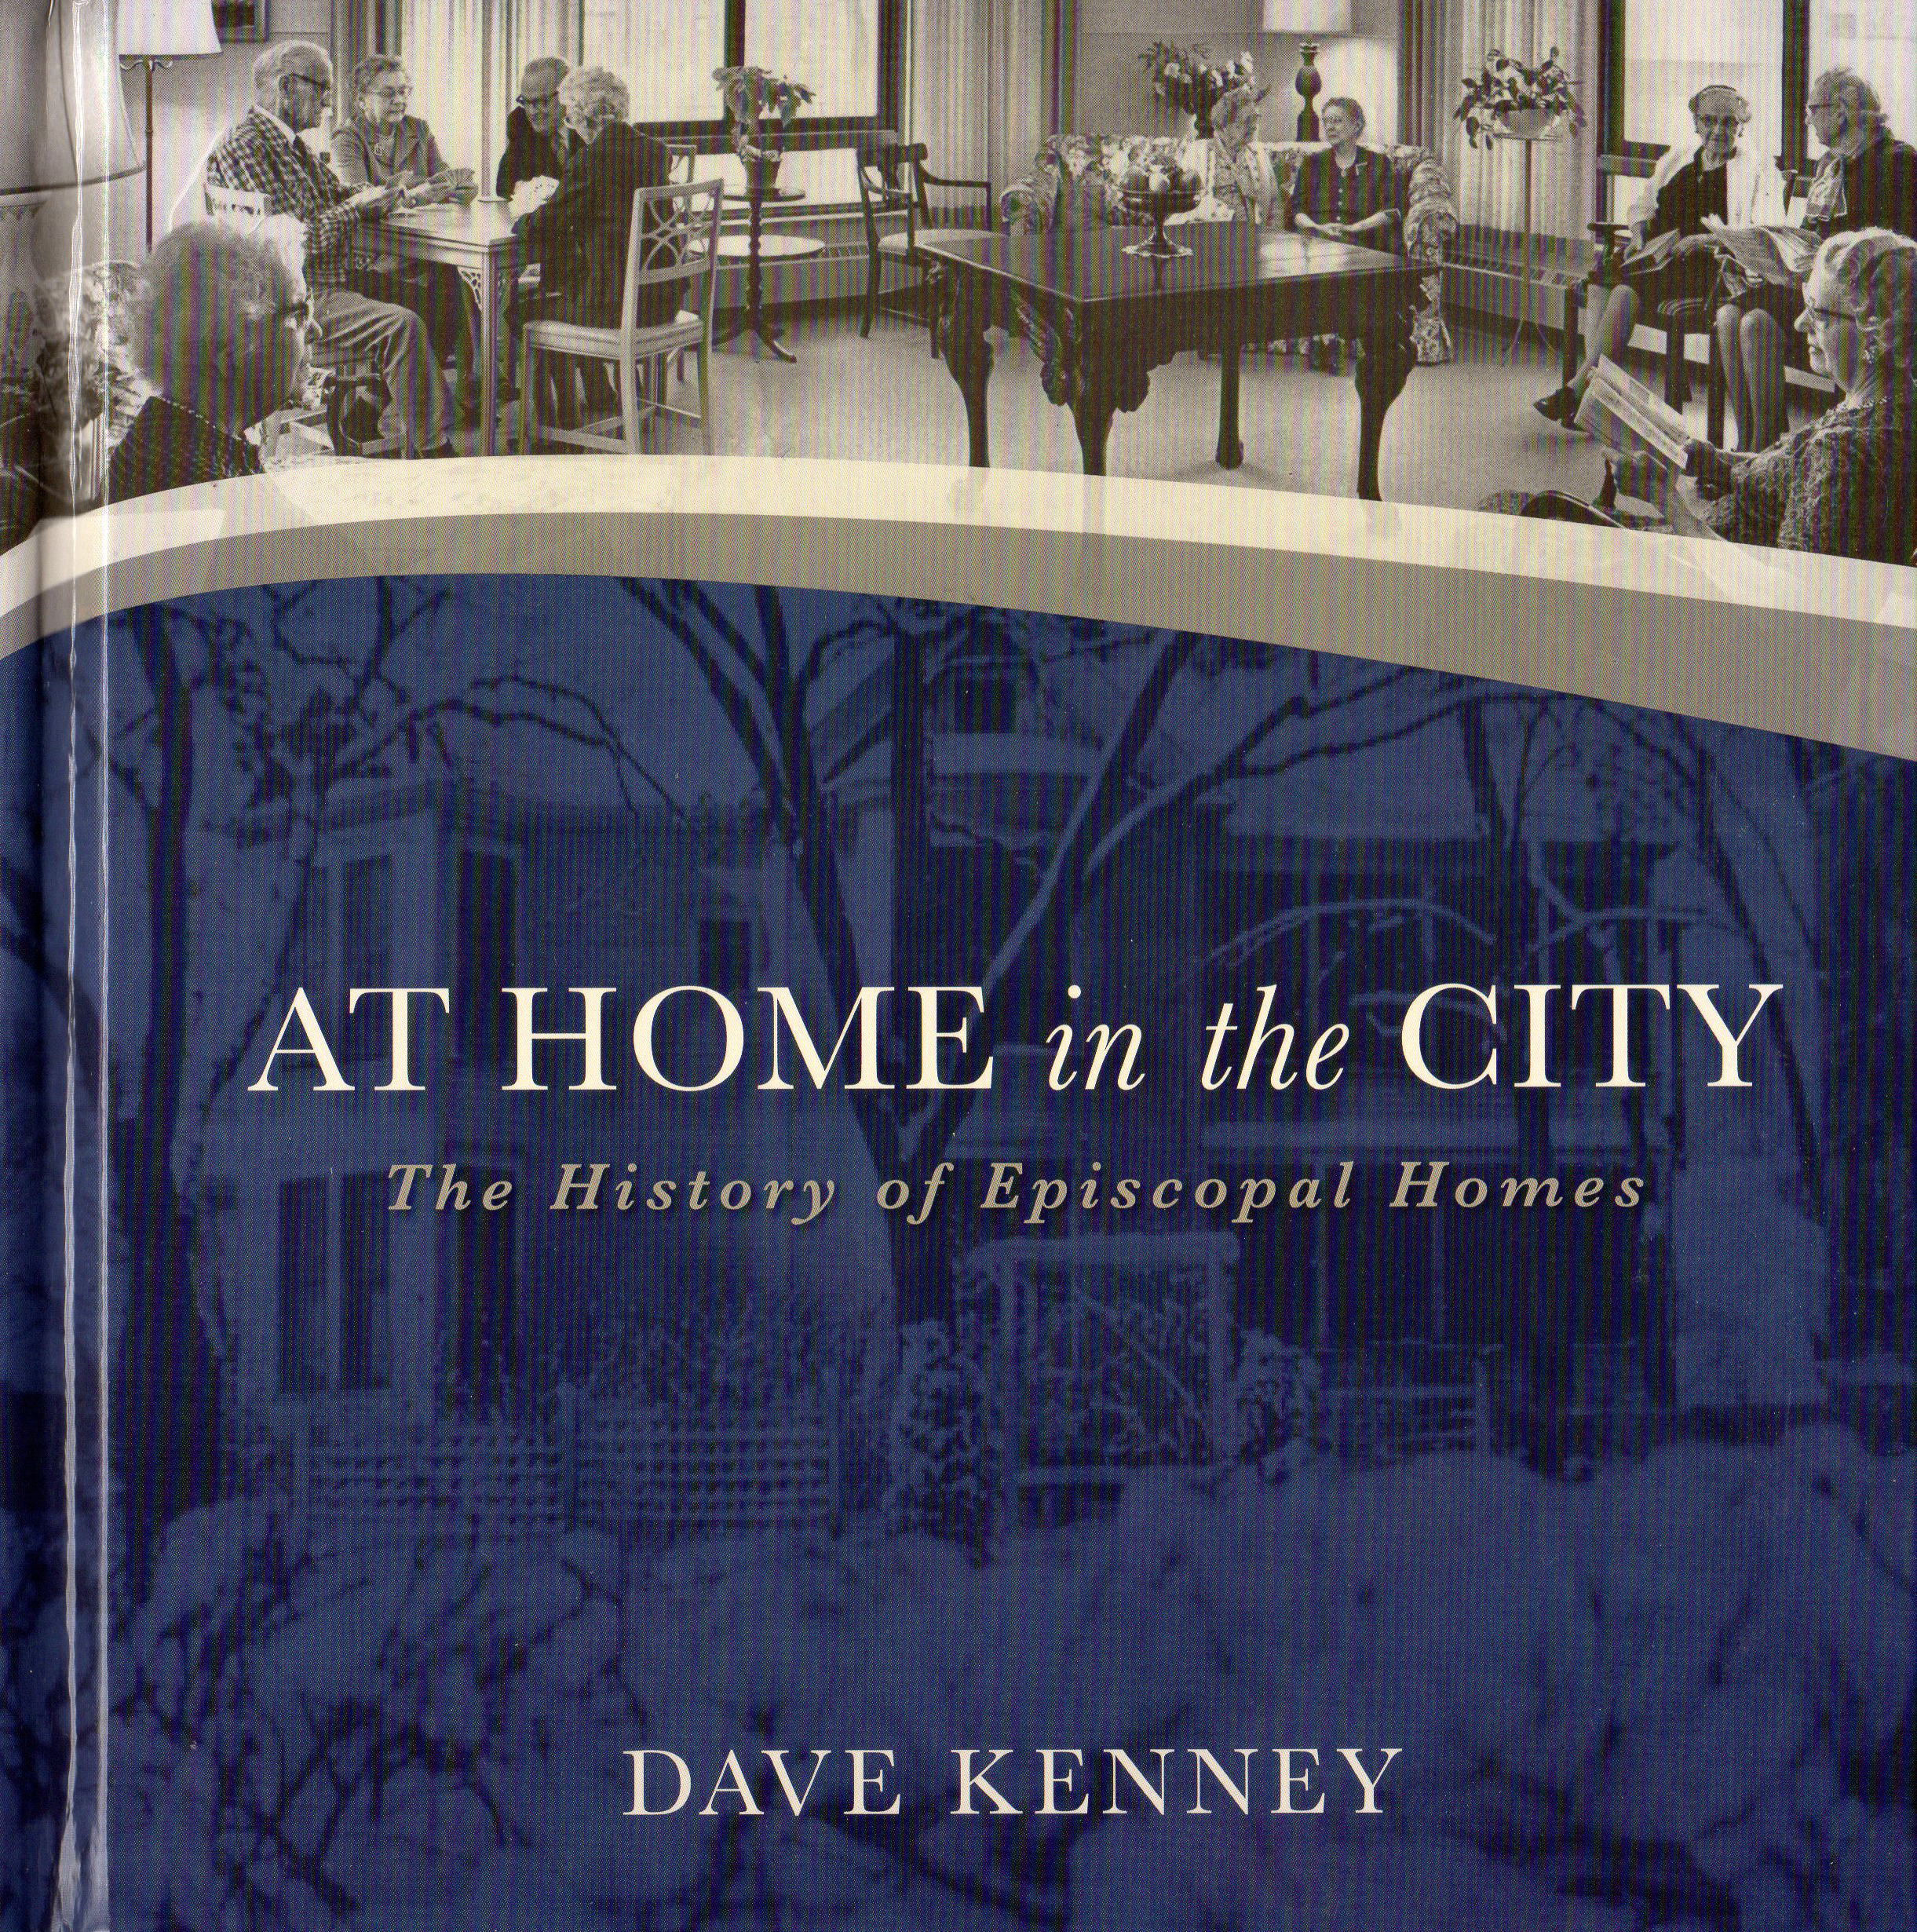 At Home in the City: The History of Episcopal Homes